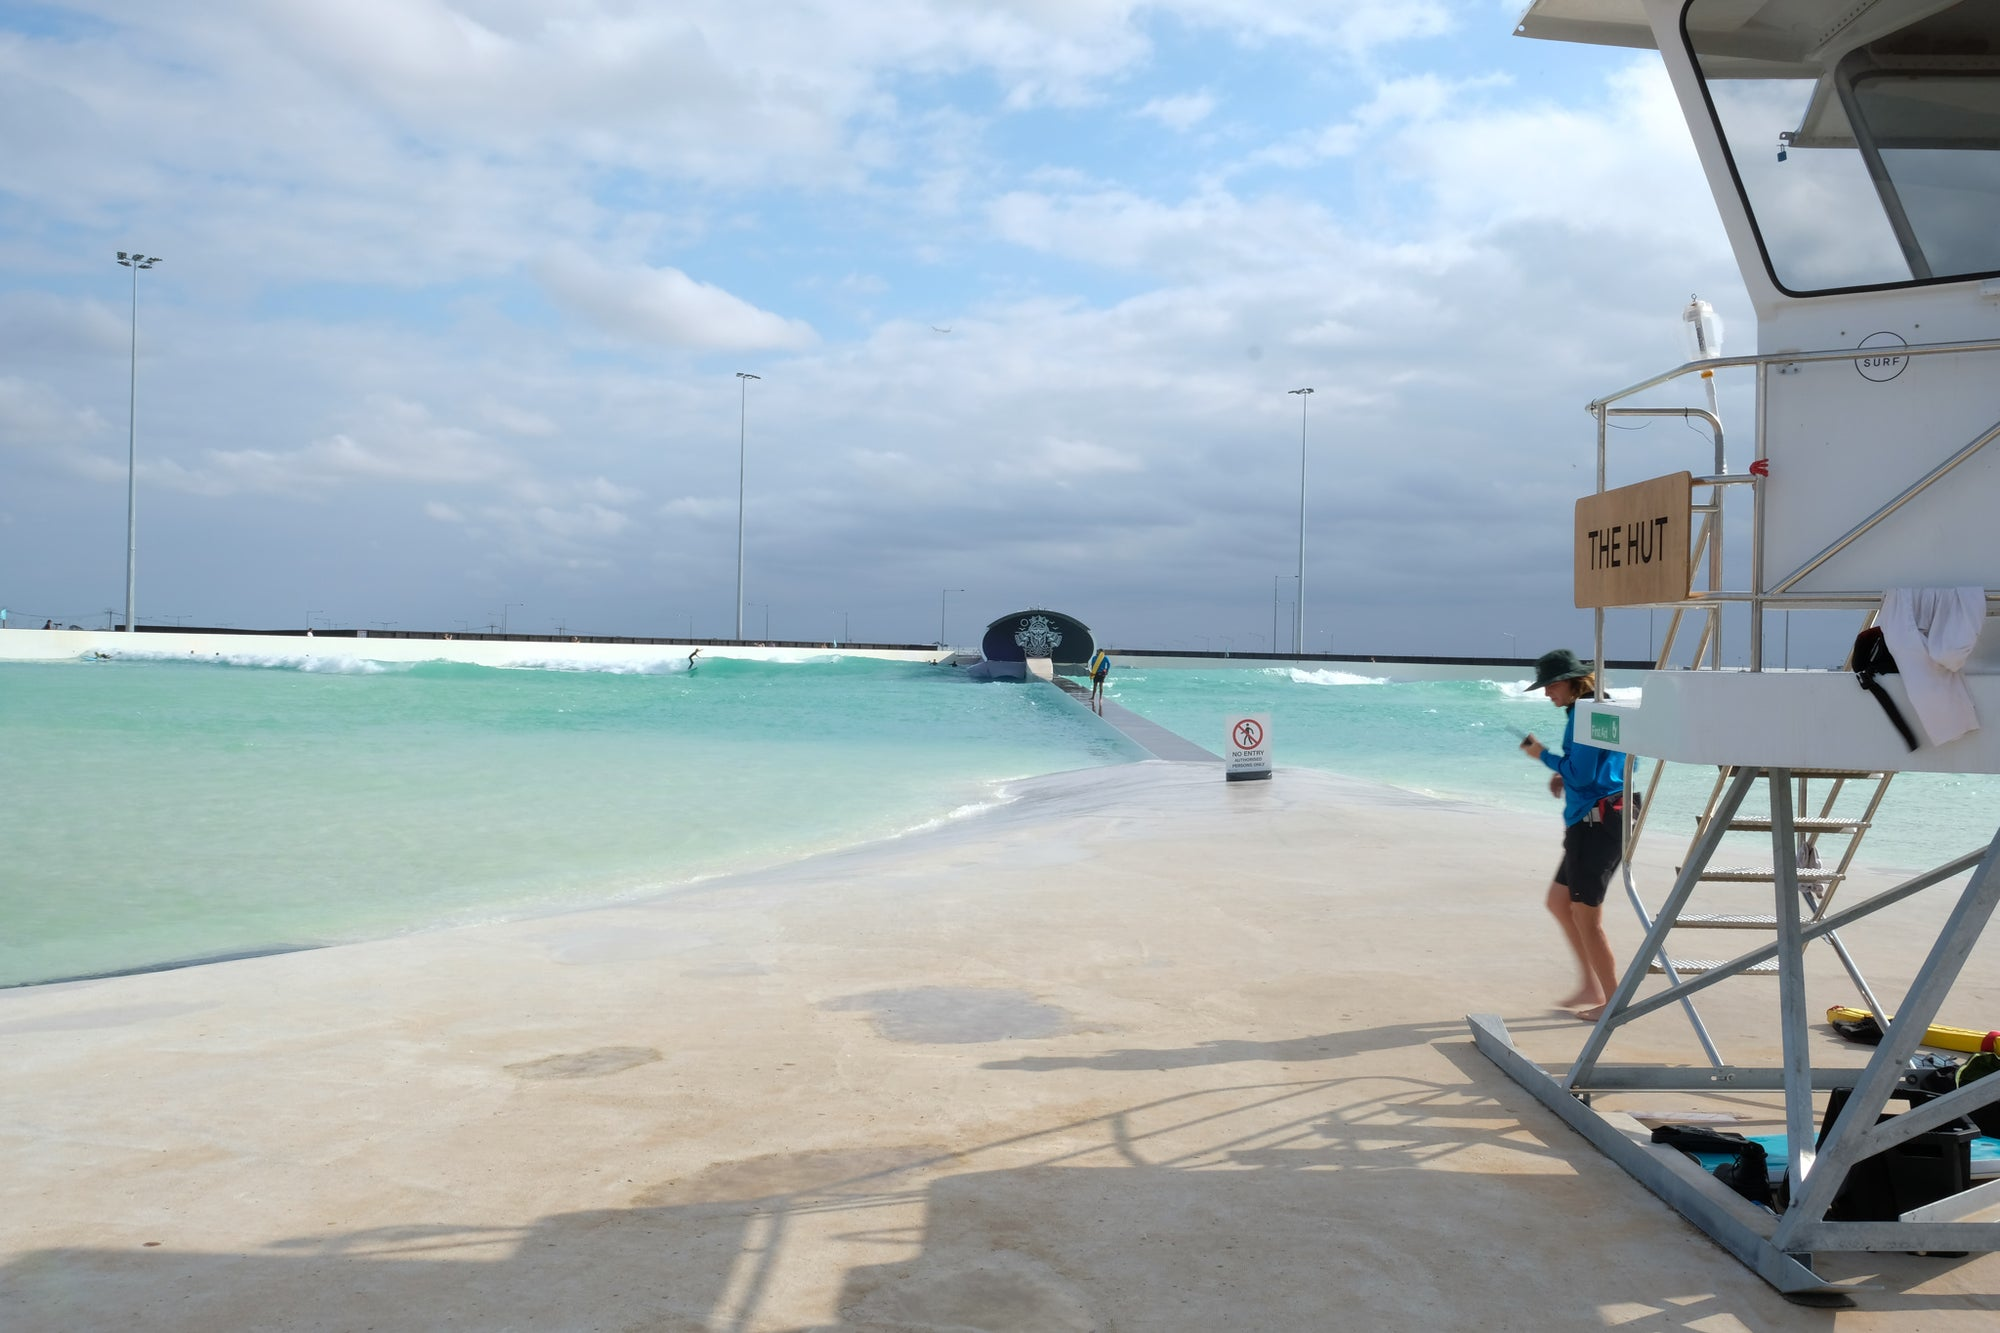 Urbn Surf Wavepool Review